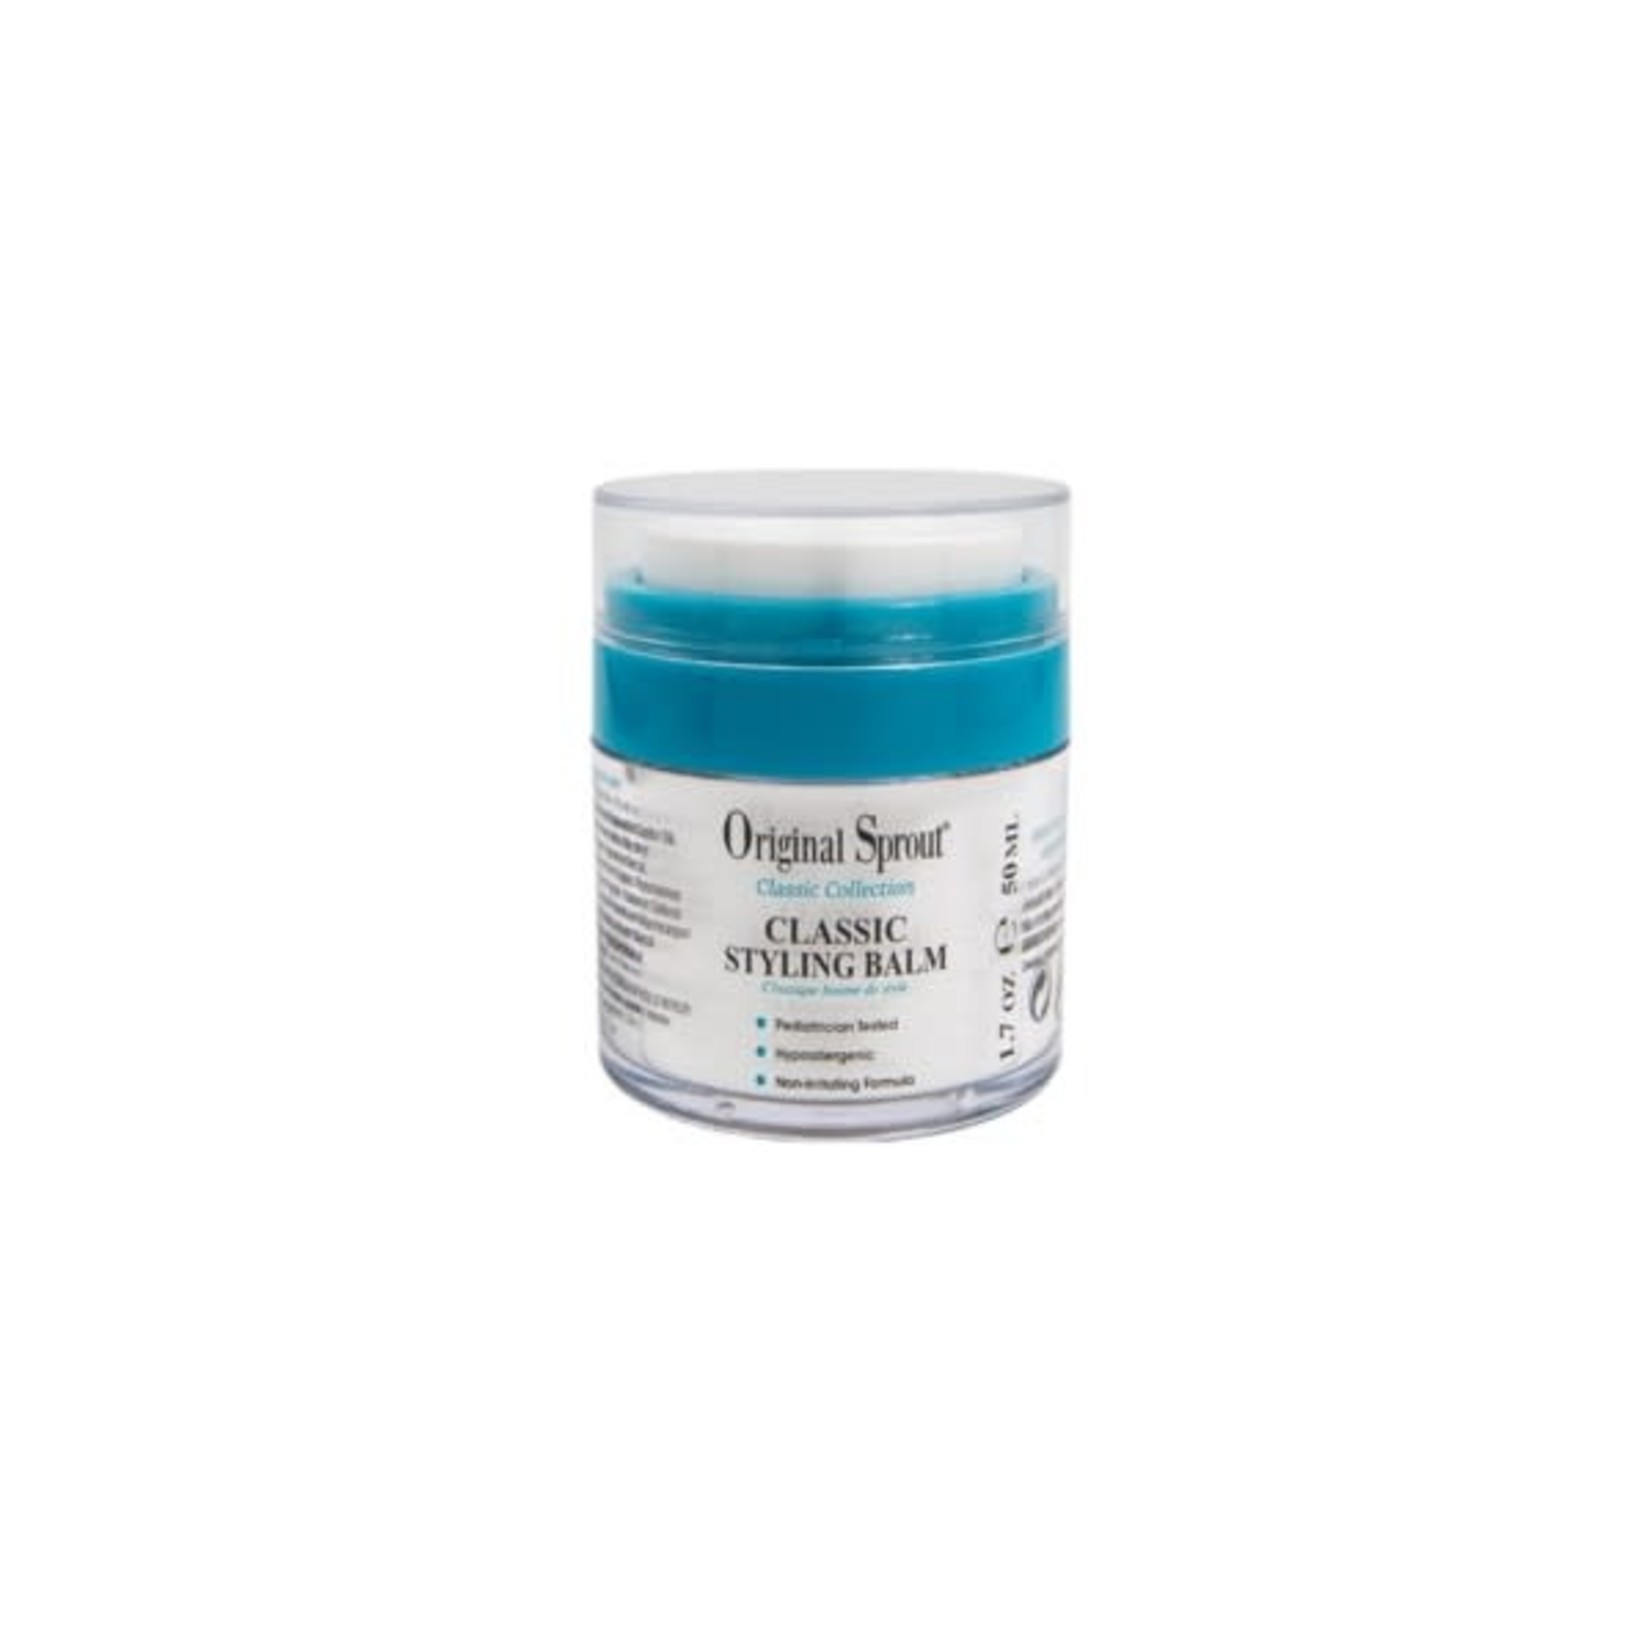 ORIGINAL SPROUT CLASSIC STYLING BALM